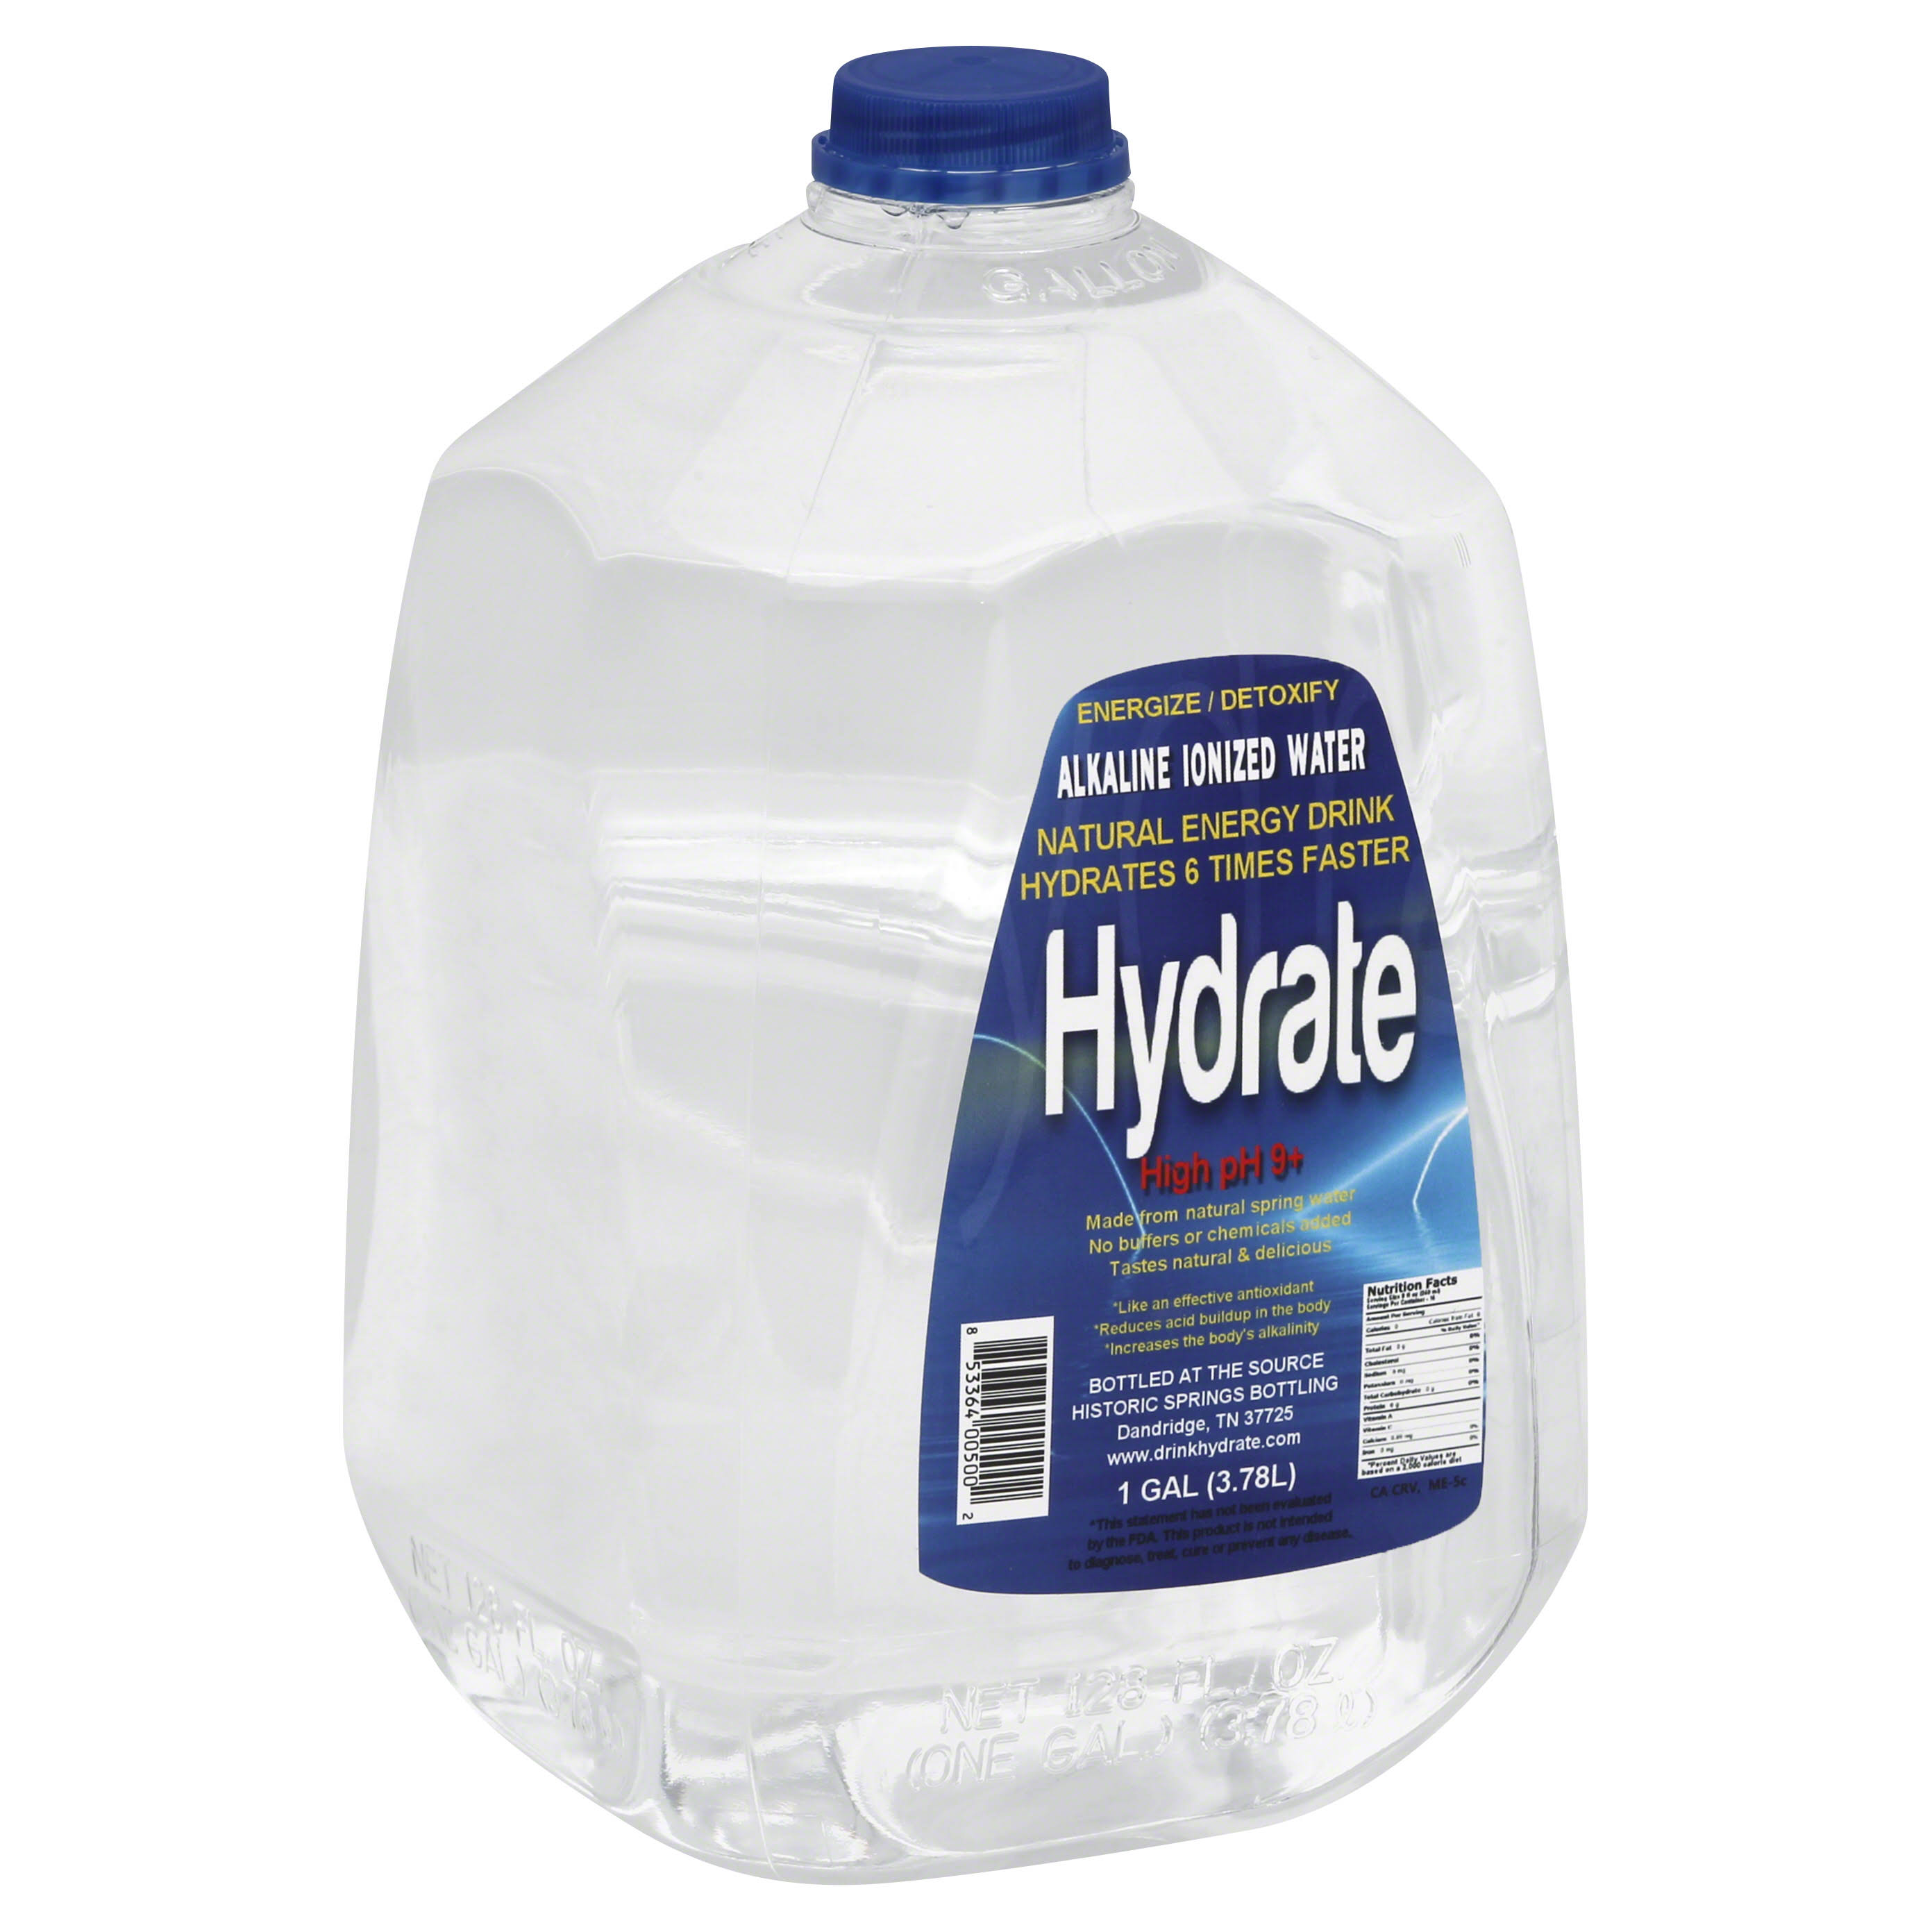 Daily Hydrating Hydrate High pH 9+ Water - 1 Gal